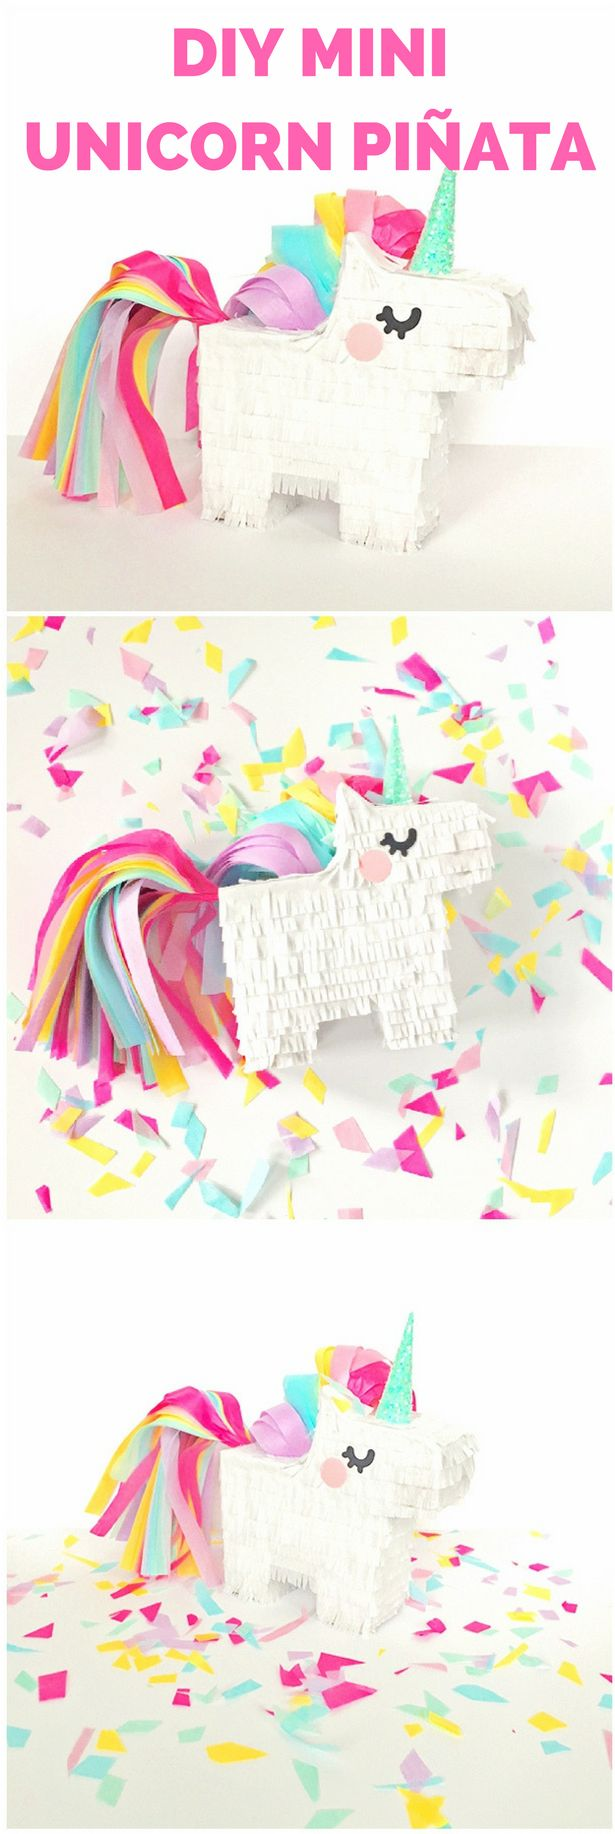 DIY Mini Unicorn Pinata with Free Printable Template.